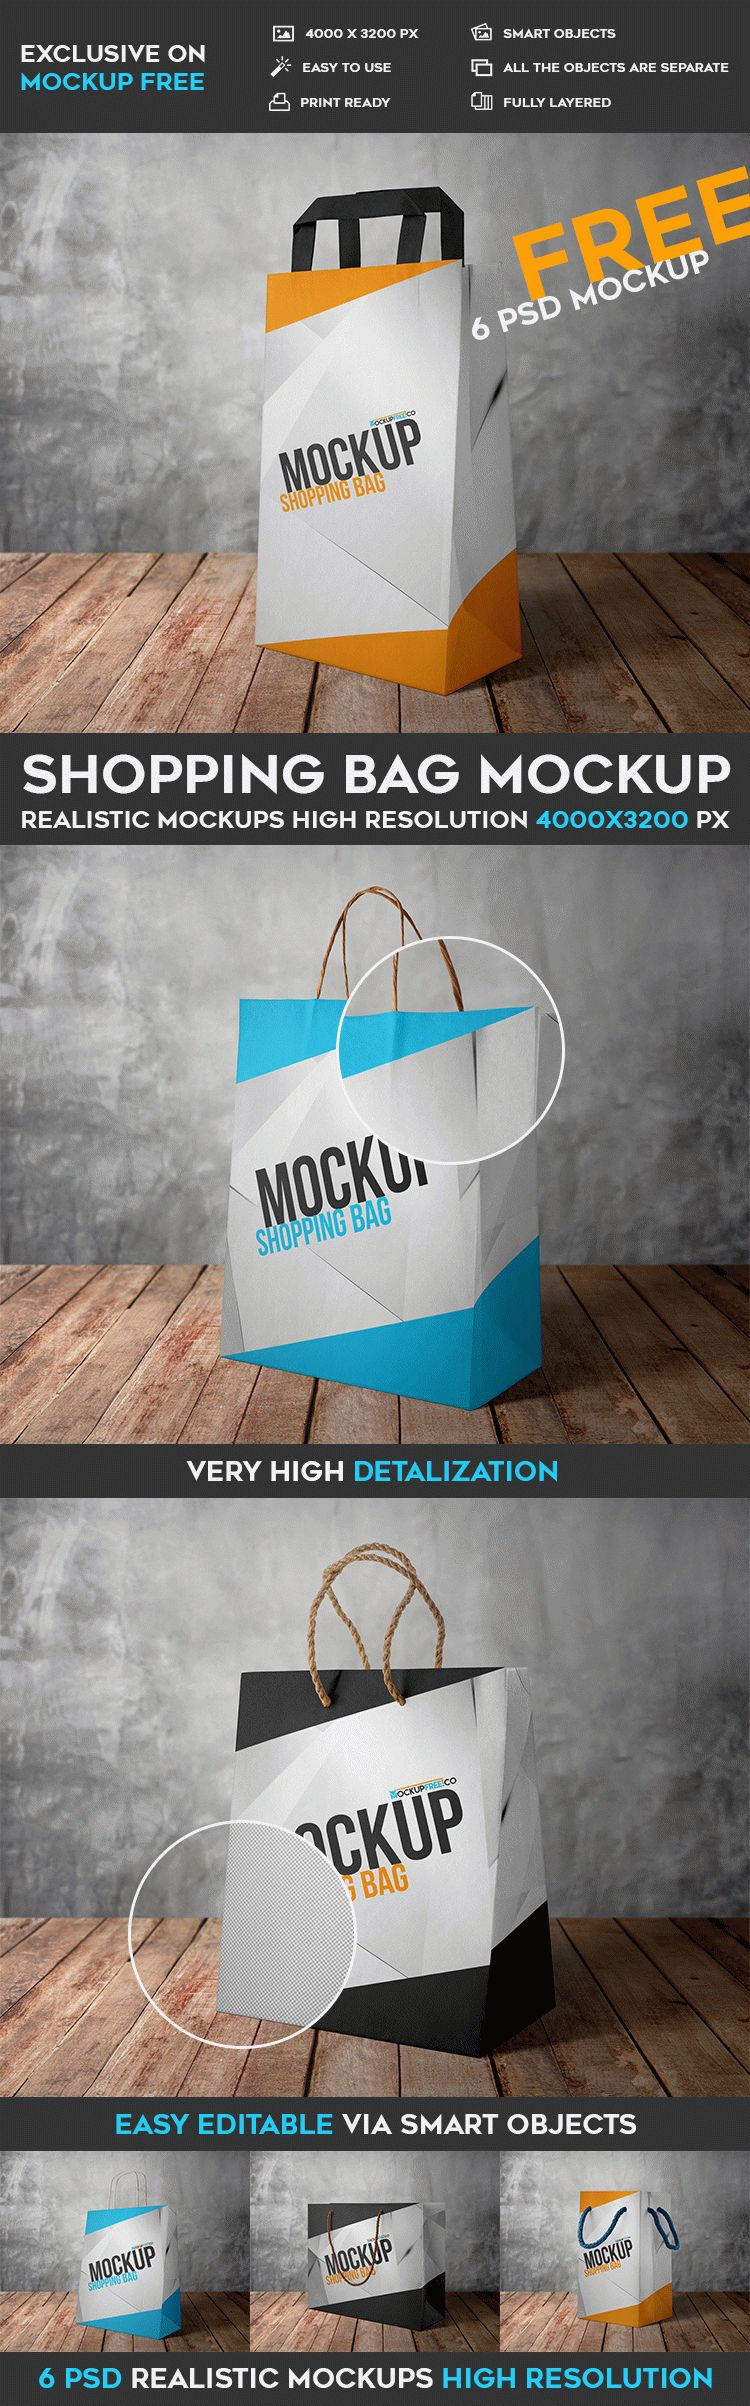 Shopping Bag - 6 Free PSD Mockups